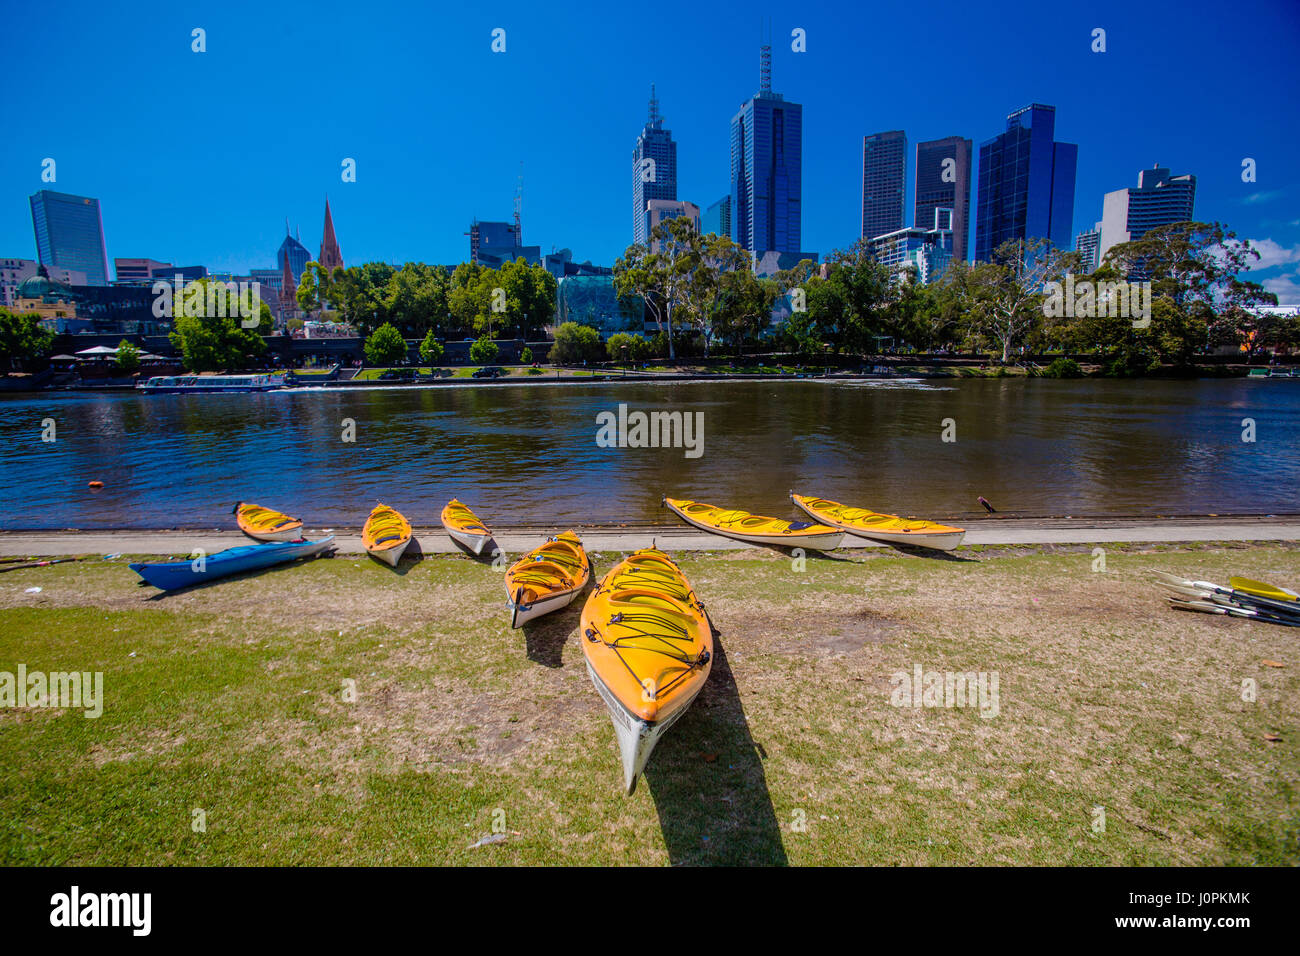 Several kayaks wait for customers next to the Yarra river and the CBD of Melbourne. - Stock Image